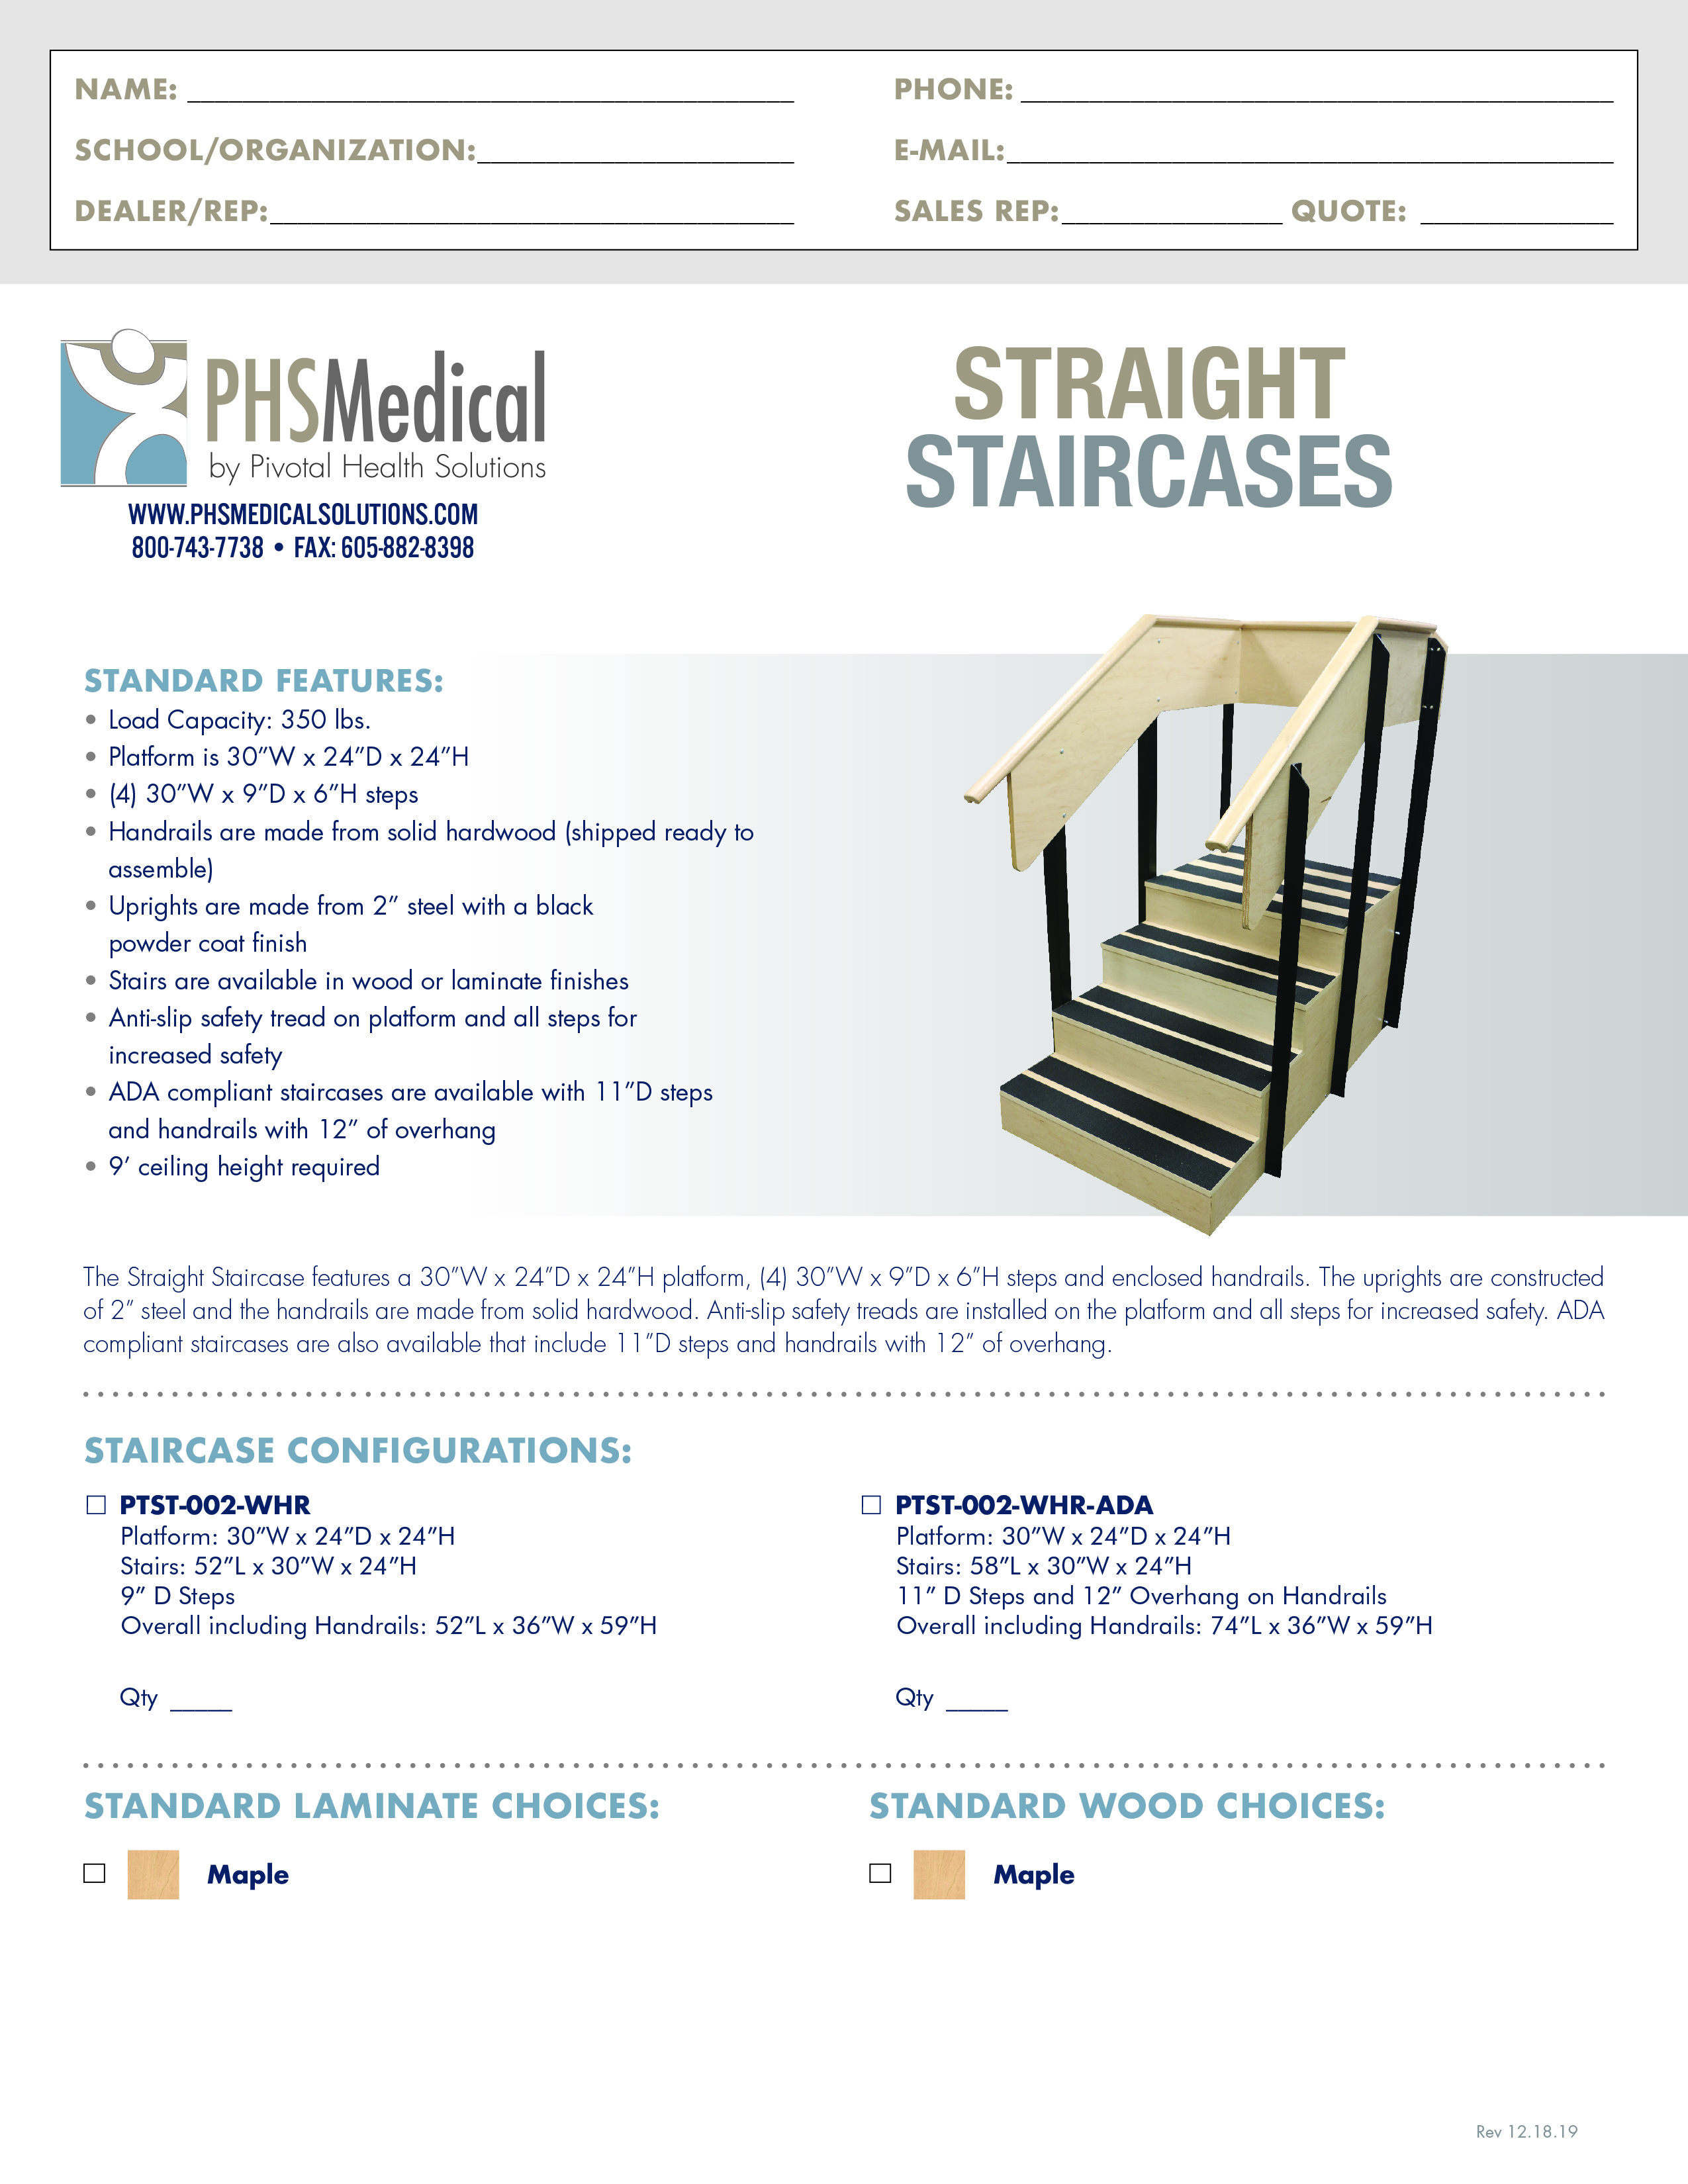 Straight Staircases Data Sheet